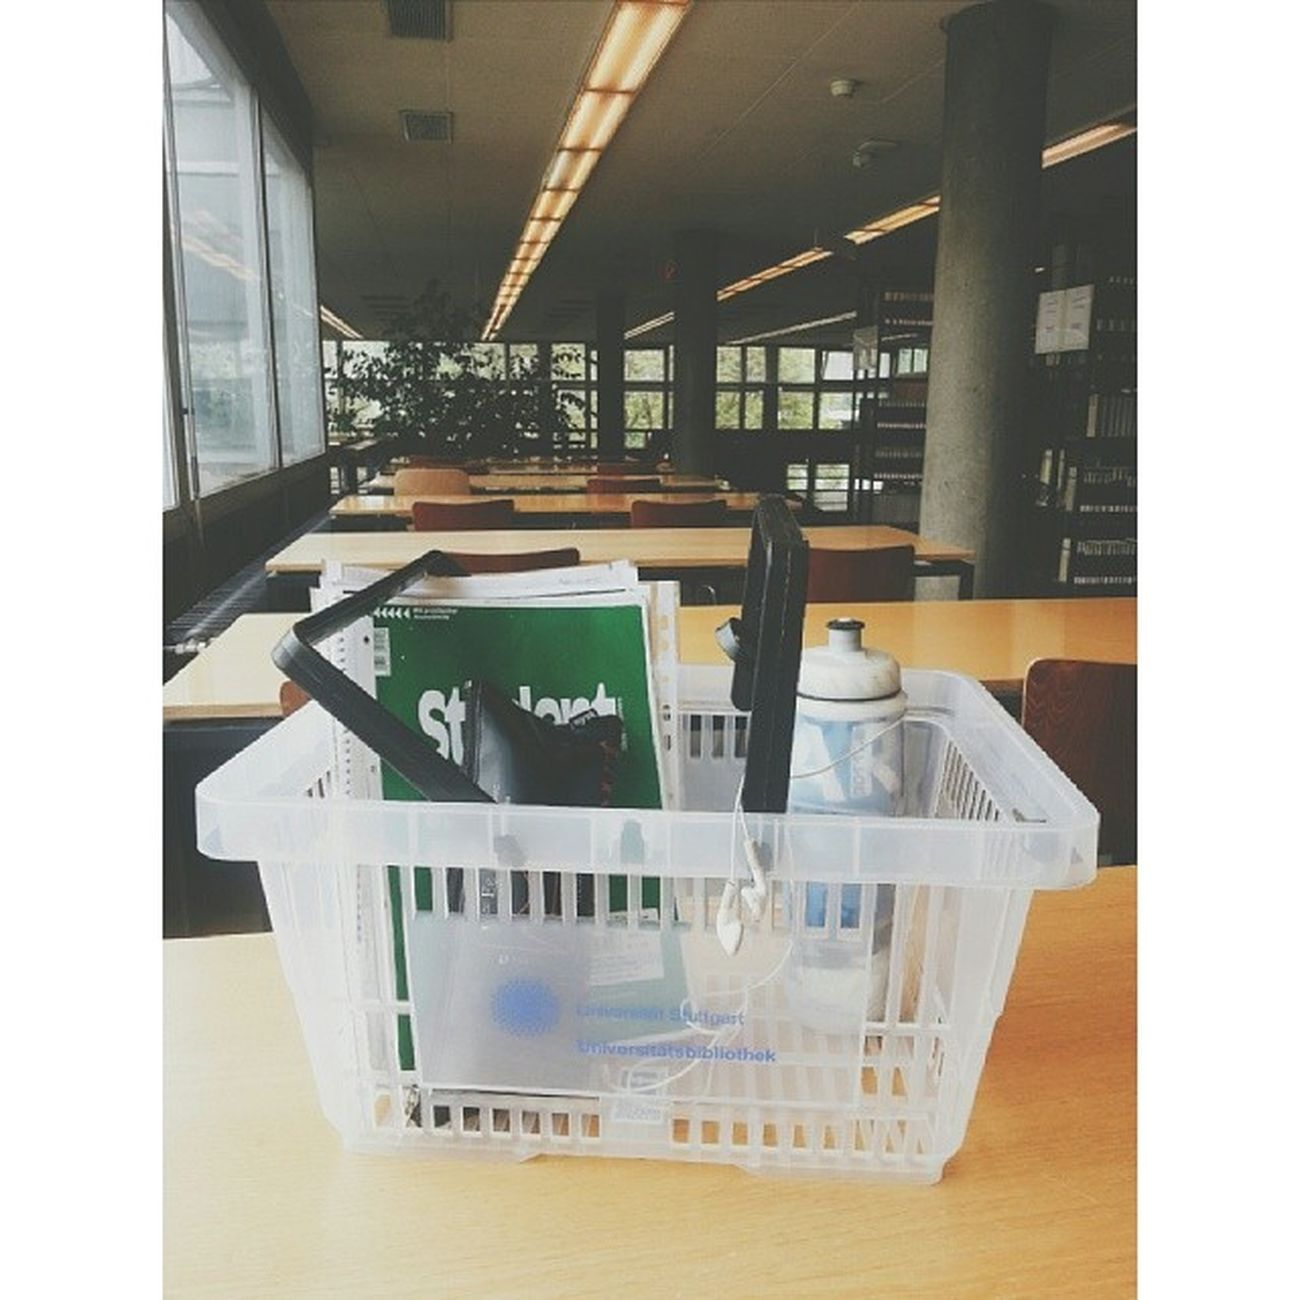 Waiting for my next class in the library and no bags are allowed. So we have to put our belongings inside a grocery basket. :) Uniquedeutschland